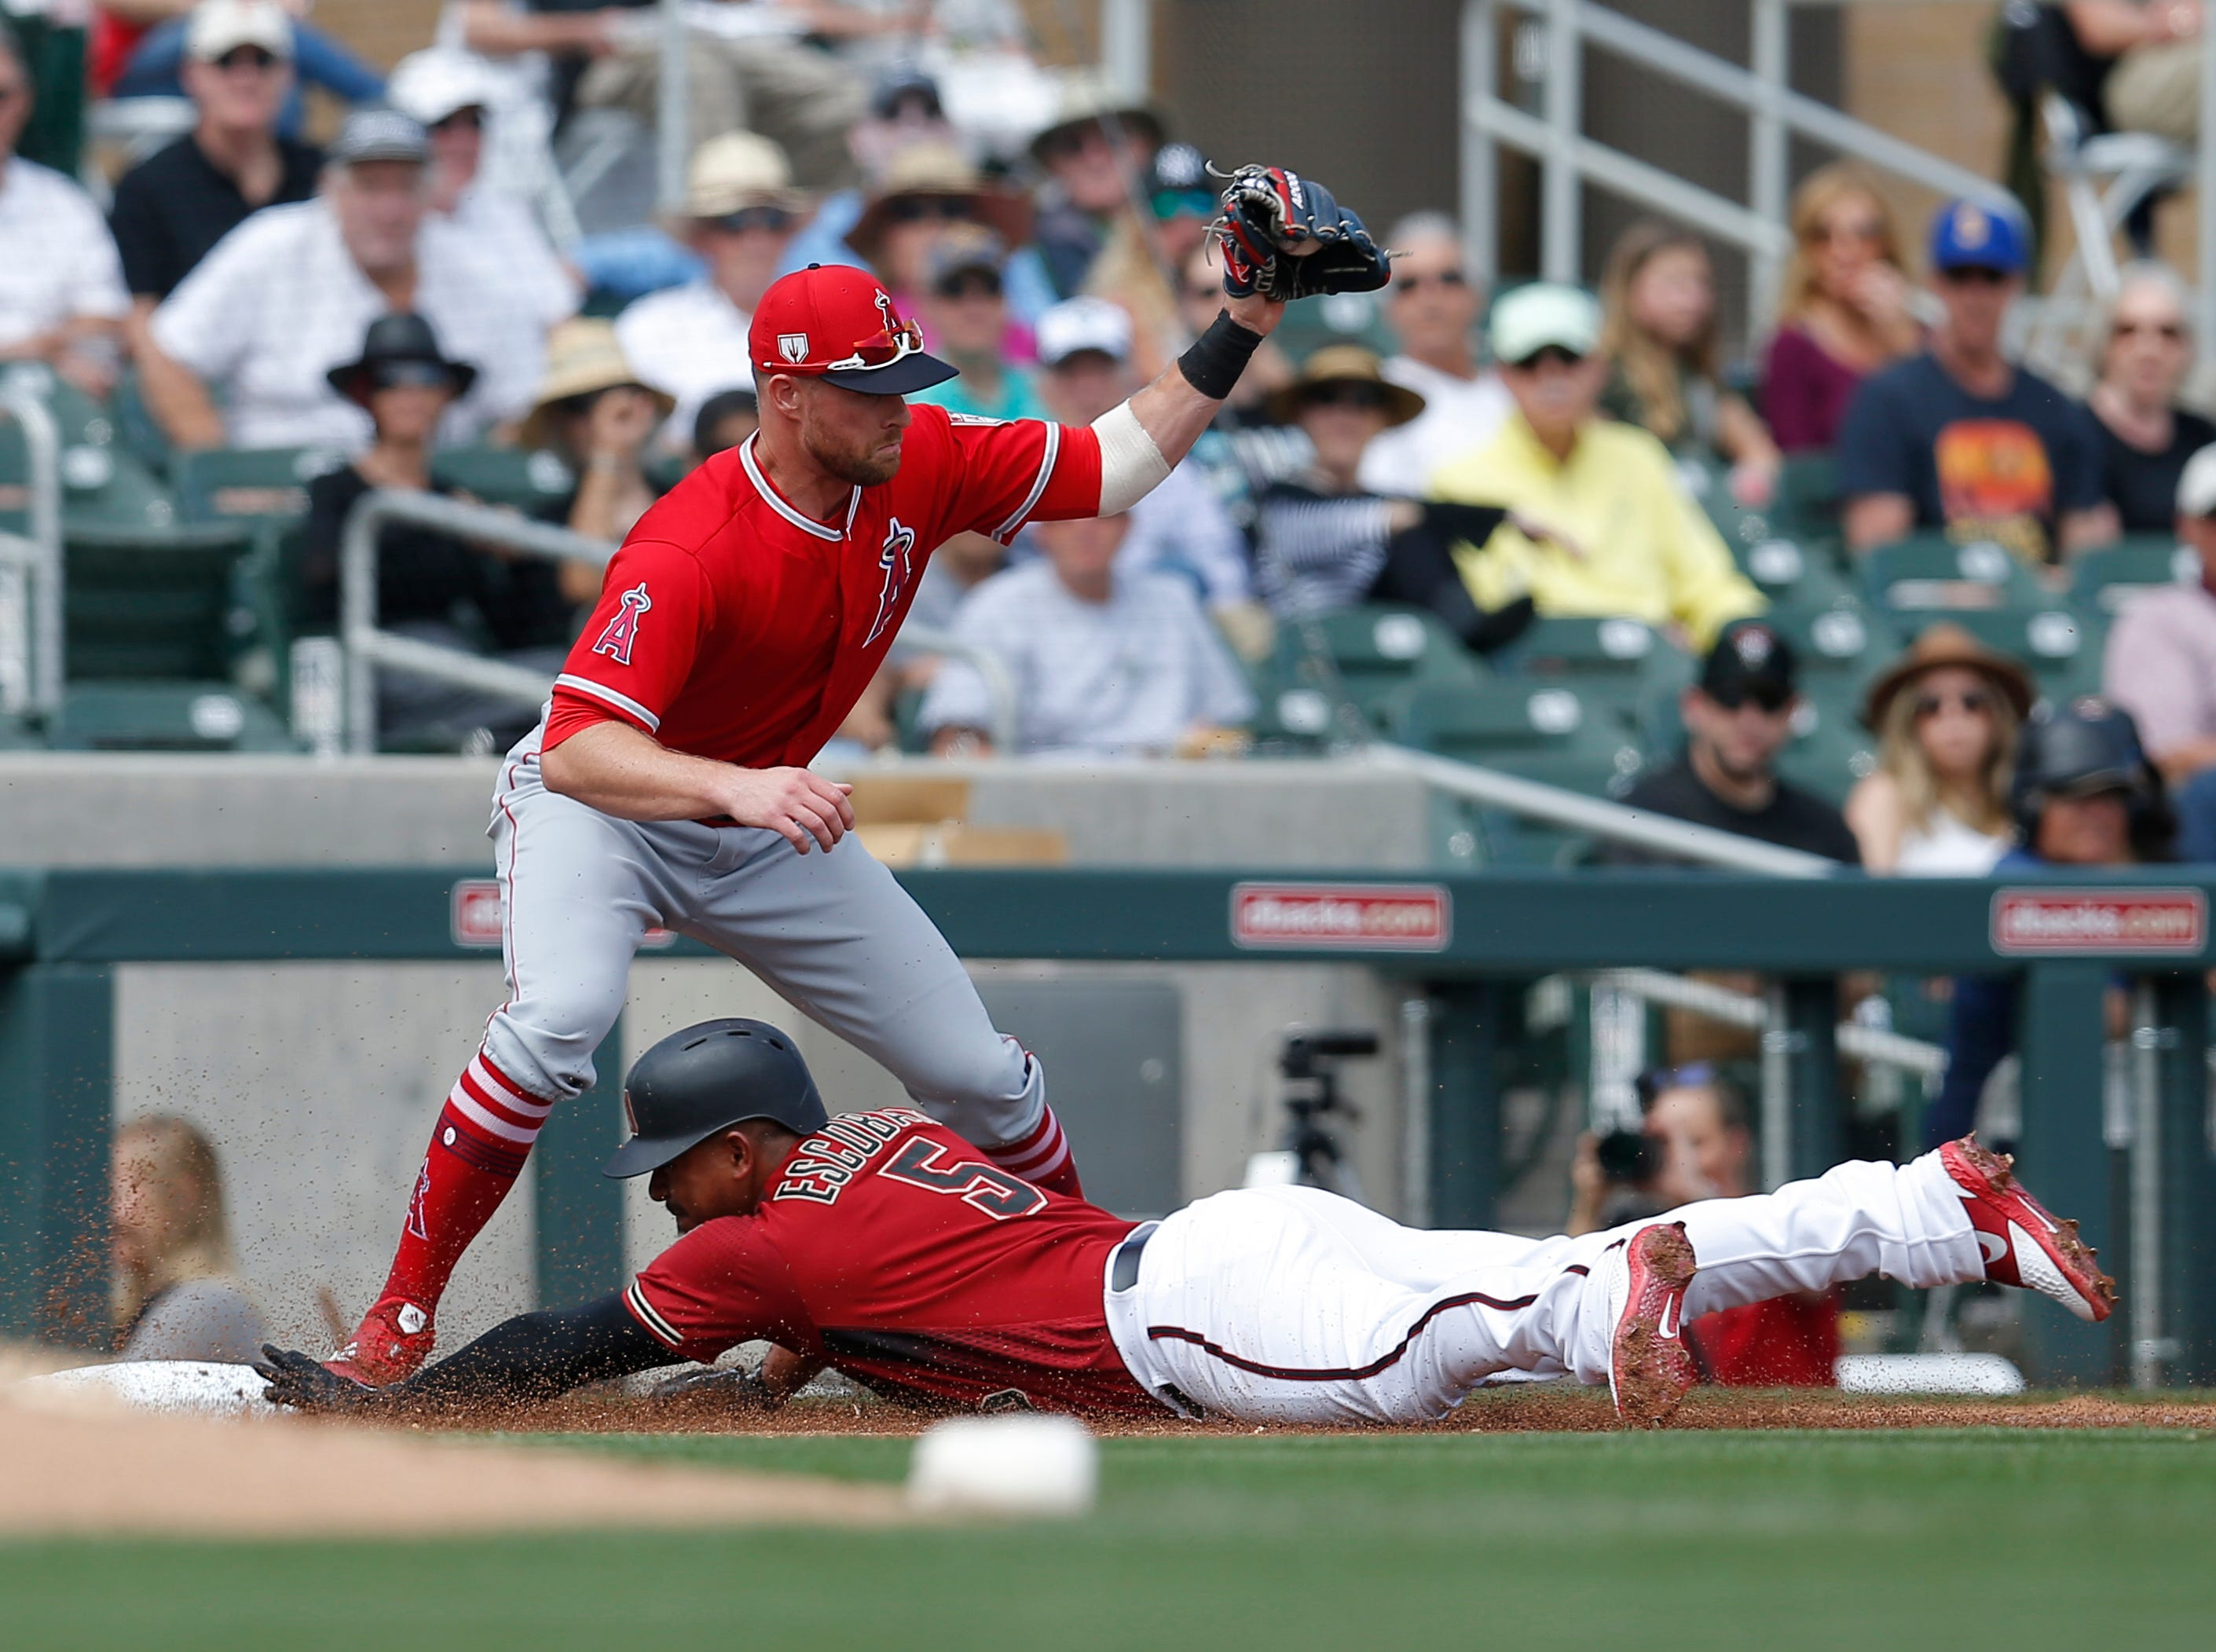 Diamondbacks third baseman Eduardo Escobar (5) sides into third base on a triple during the first inning of a spring training game against the Los Angeles Angels at Salt River Fields.